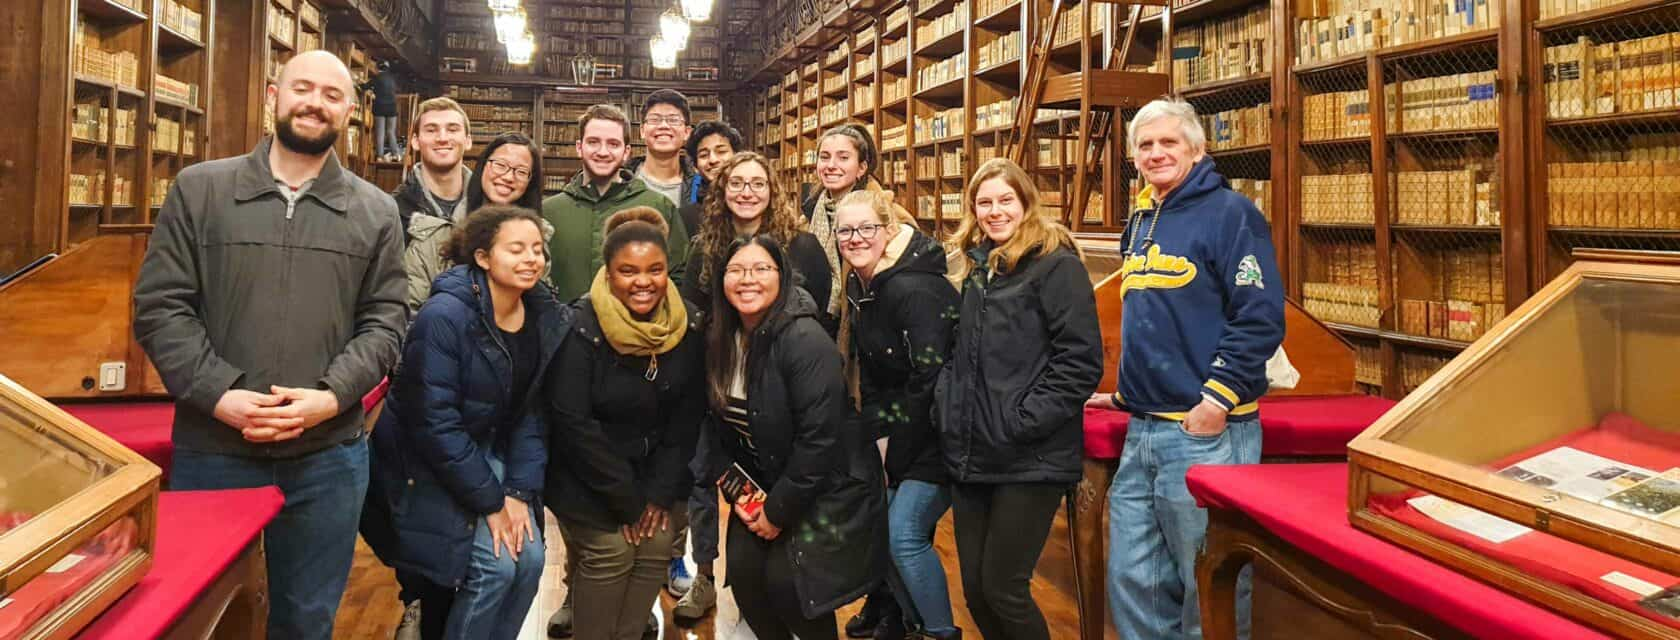 Students in an old library.